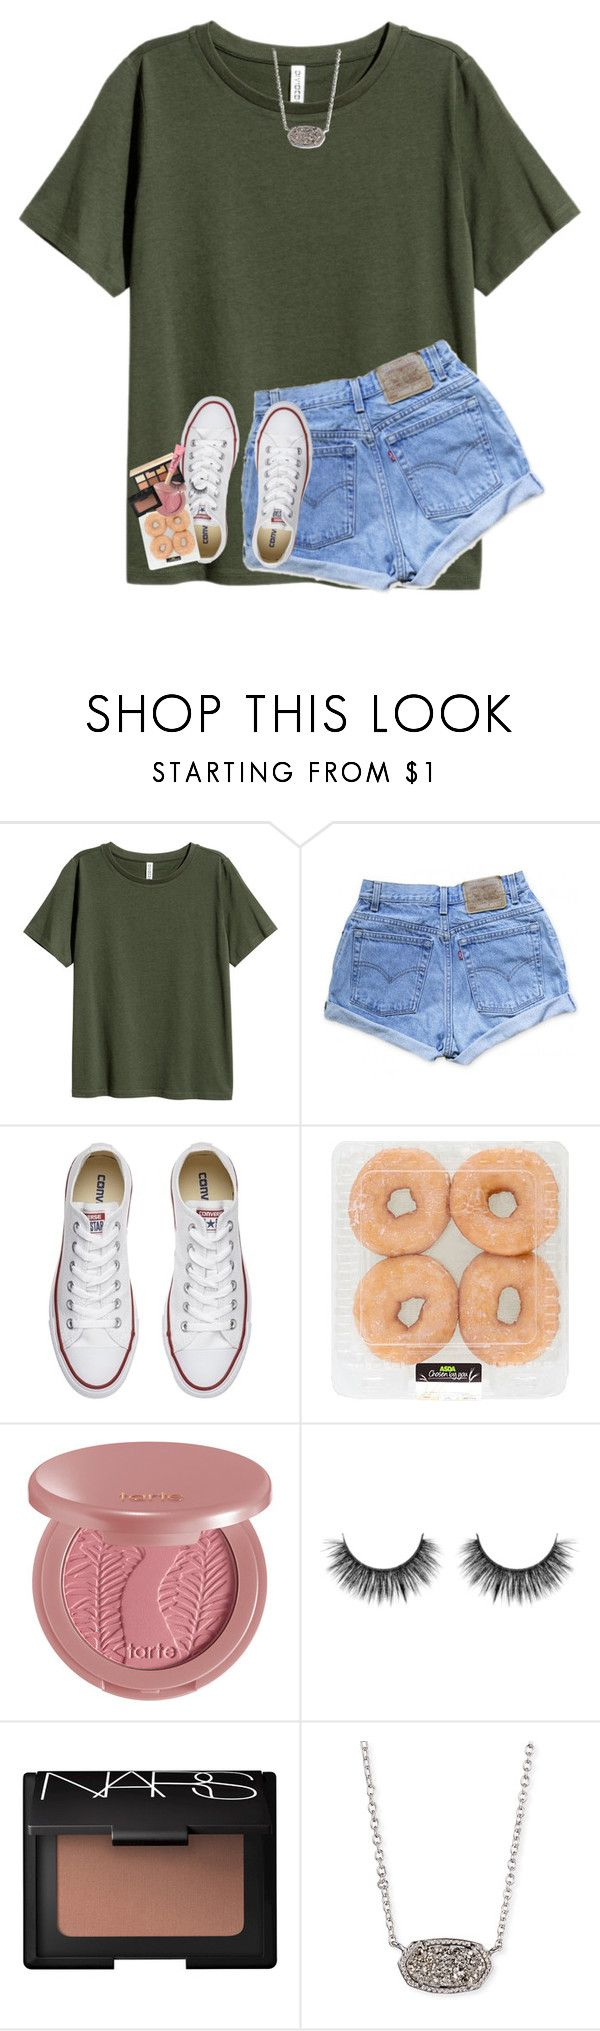 """donut revolution"" by lindsaygreys ❤ liked on Polyvore featuring Levi's, Converse, NARS Cosmetics, tarte, Kendra Scott and Too Faced Cosmetics"